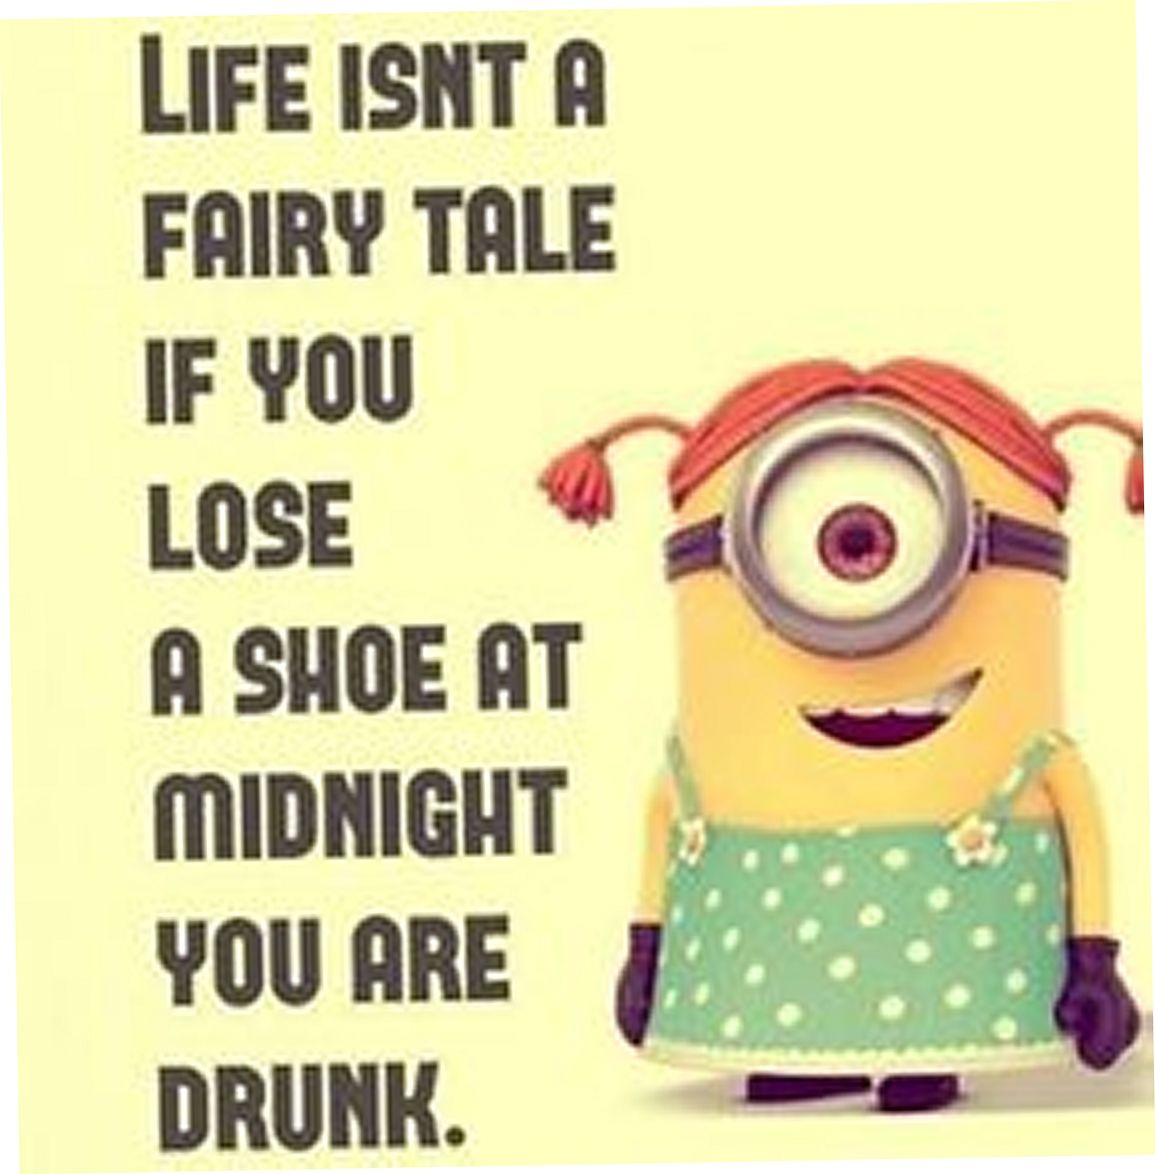 Today New Funny Minions Funny Minions Minions Pinterest - 22 funny puns brought to life with cute illustrations